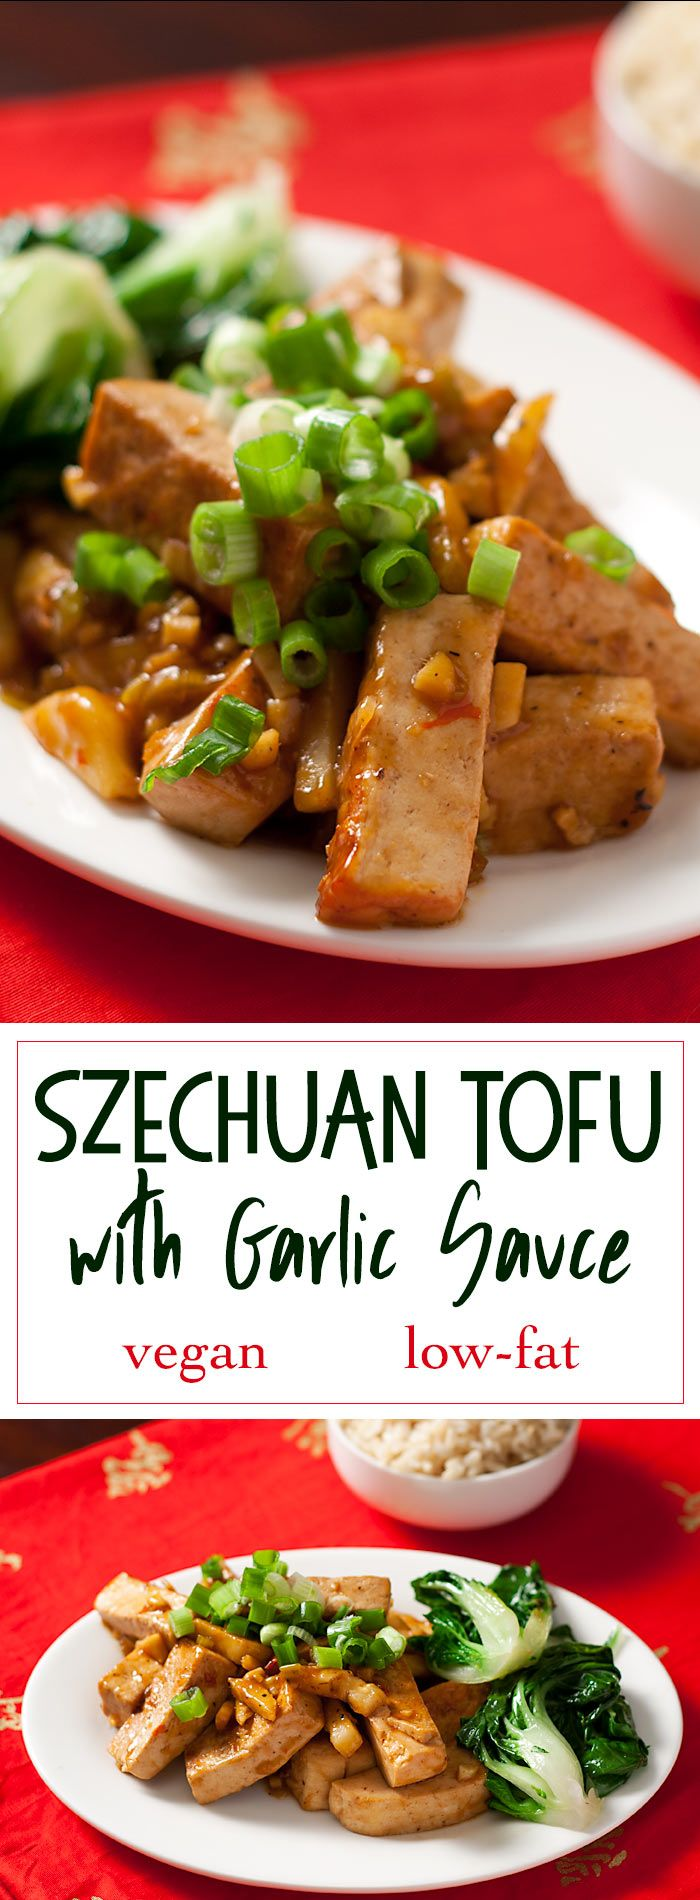 Tofu is simmered in a sweet-spicy garlic sauce to make Szechuan Tofu, a vegan variation on a traditional Chinese dish. Fresh water chestnuts add crunch.